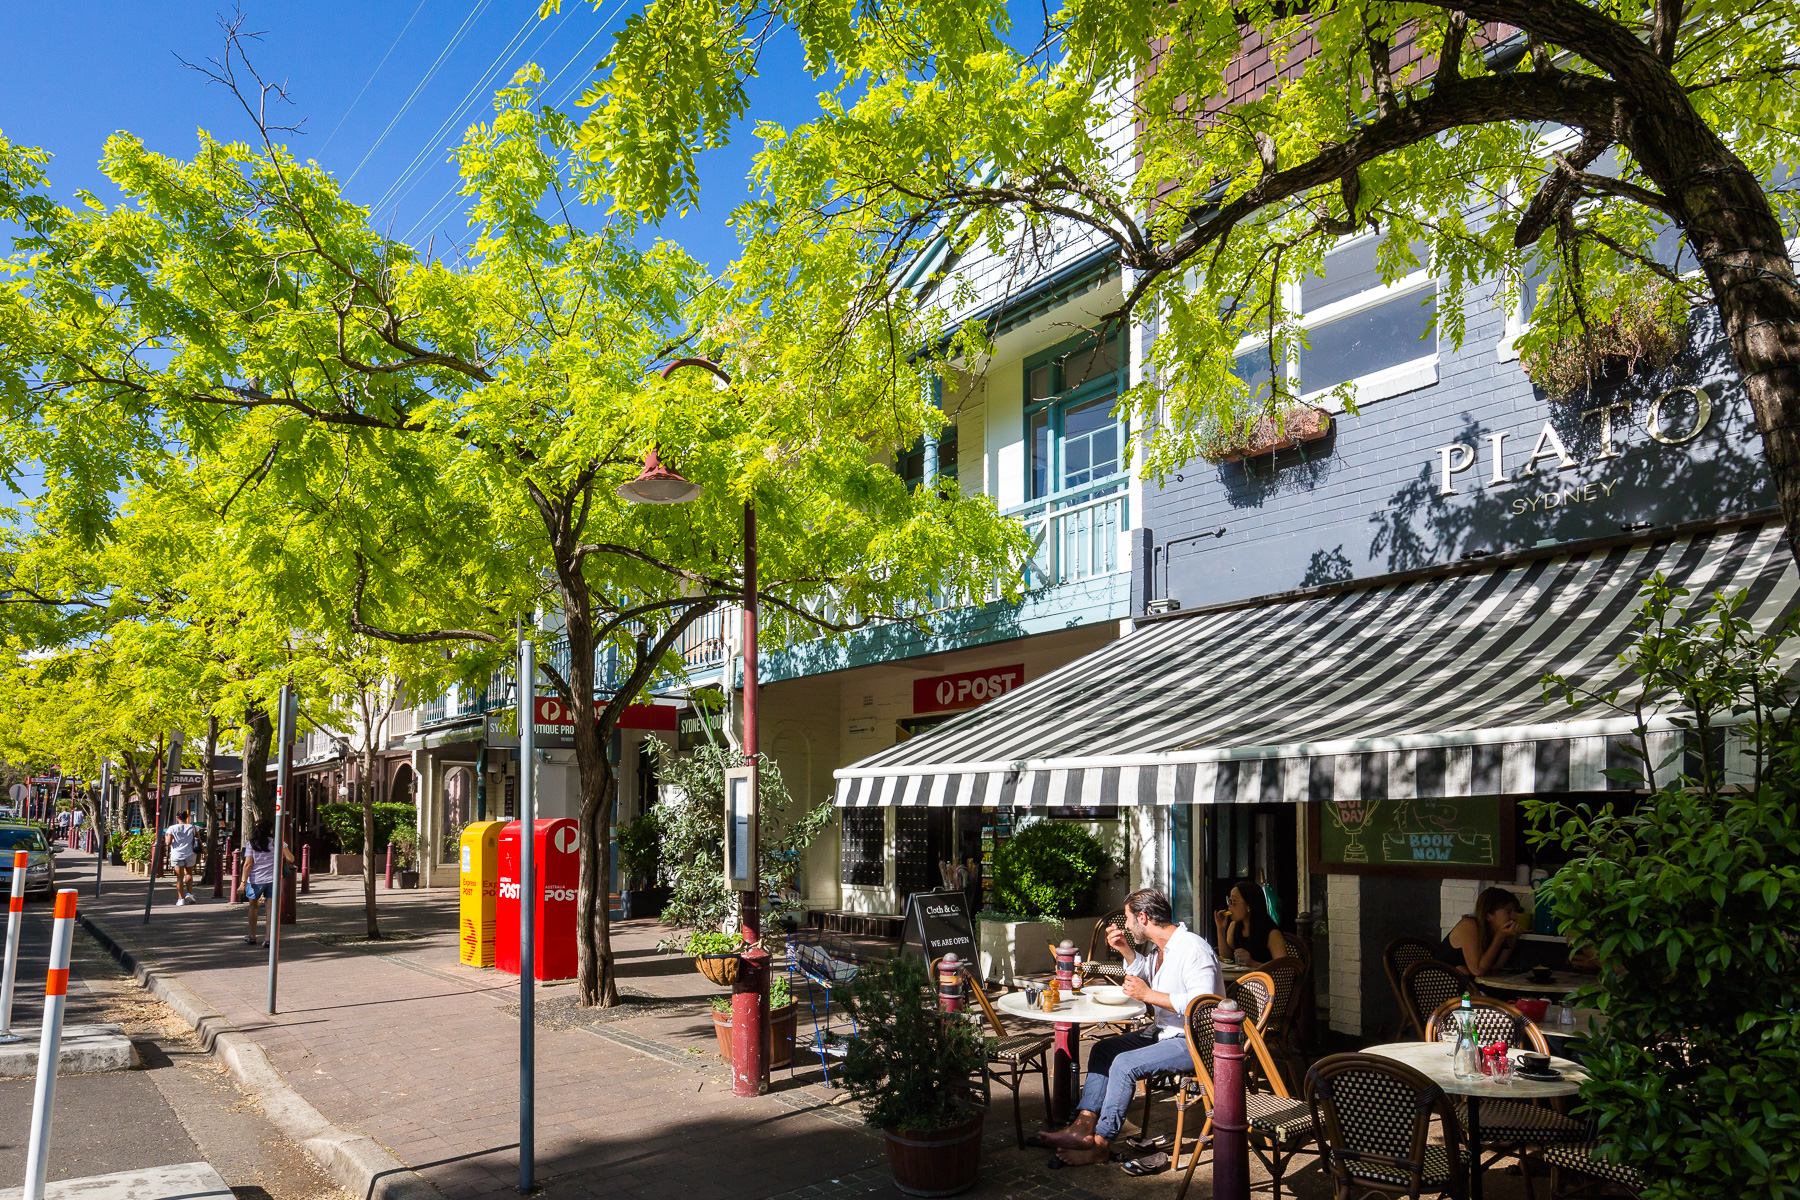 Cafes, shops and restaurants in McMahons Point Village - a 5 minute walk away.